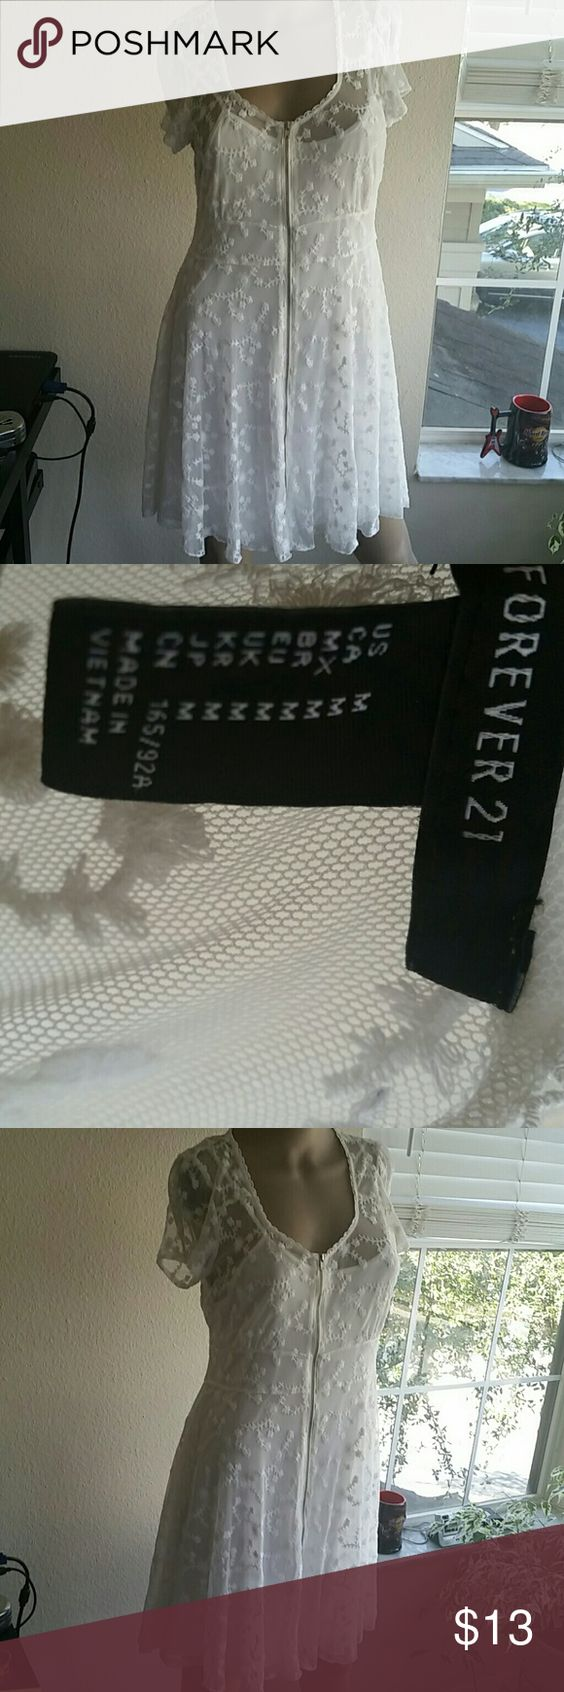 Forever21  white lace dress size M White  lace dress and slip from forever21 wore 1x Dresses Mini